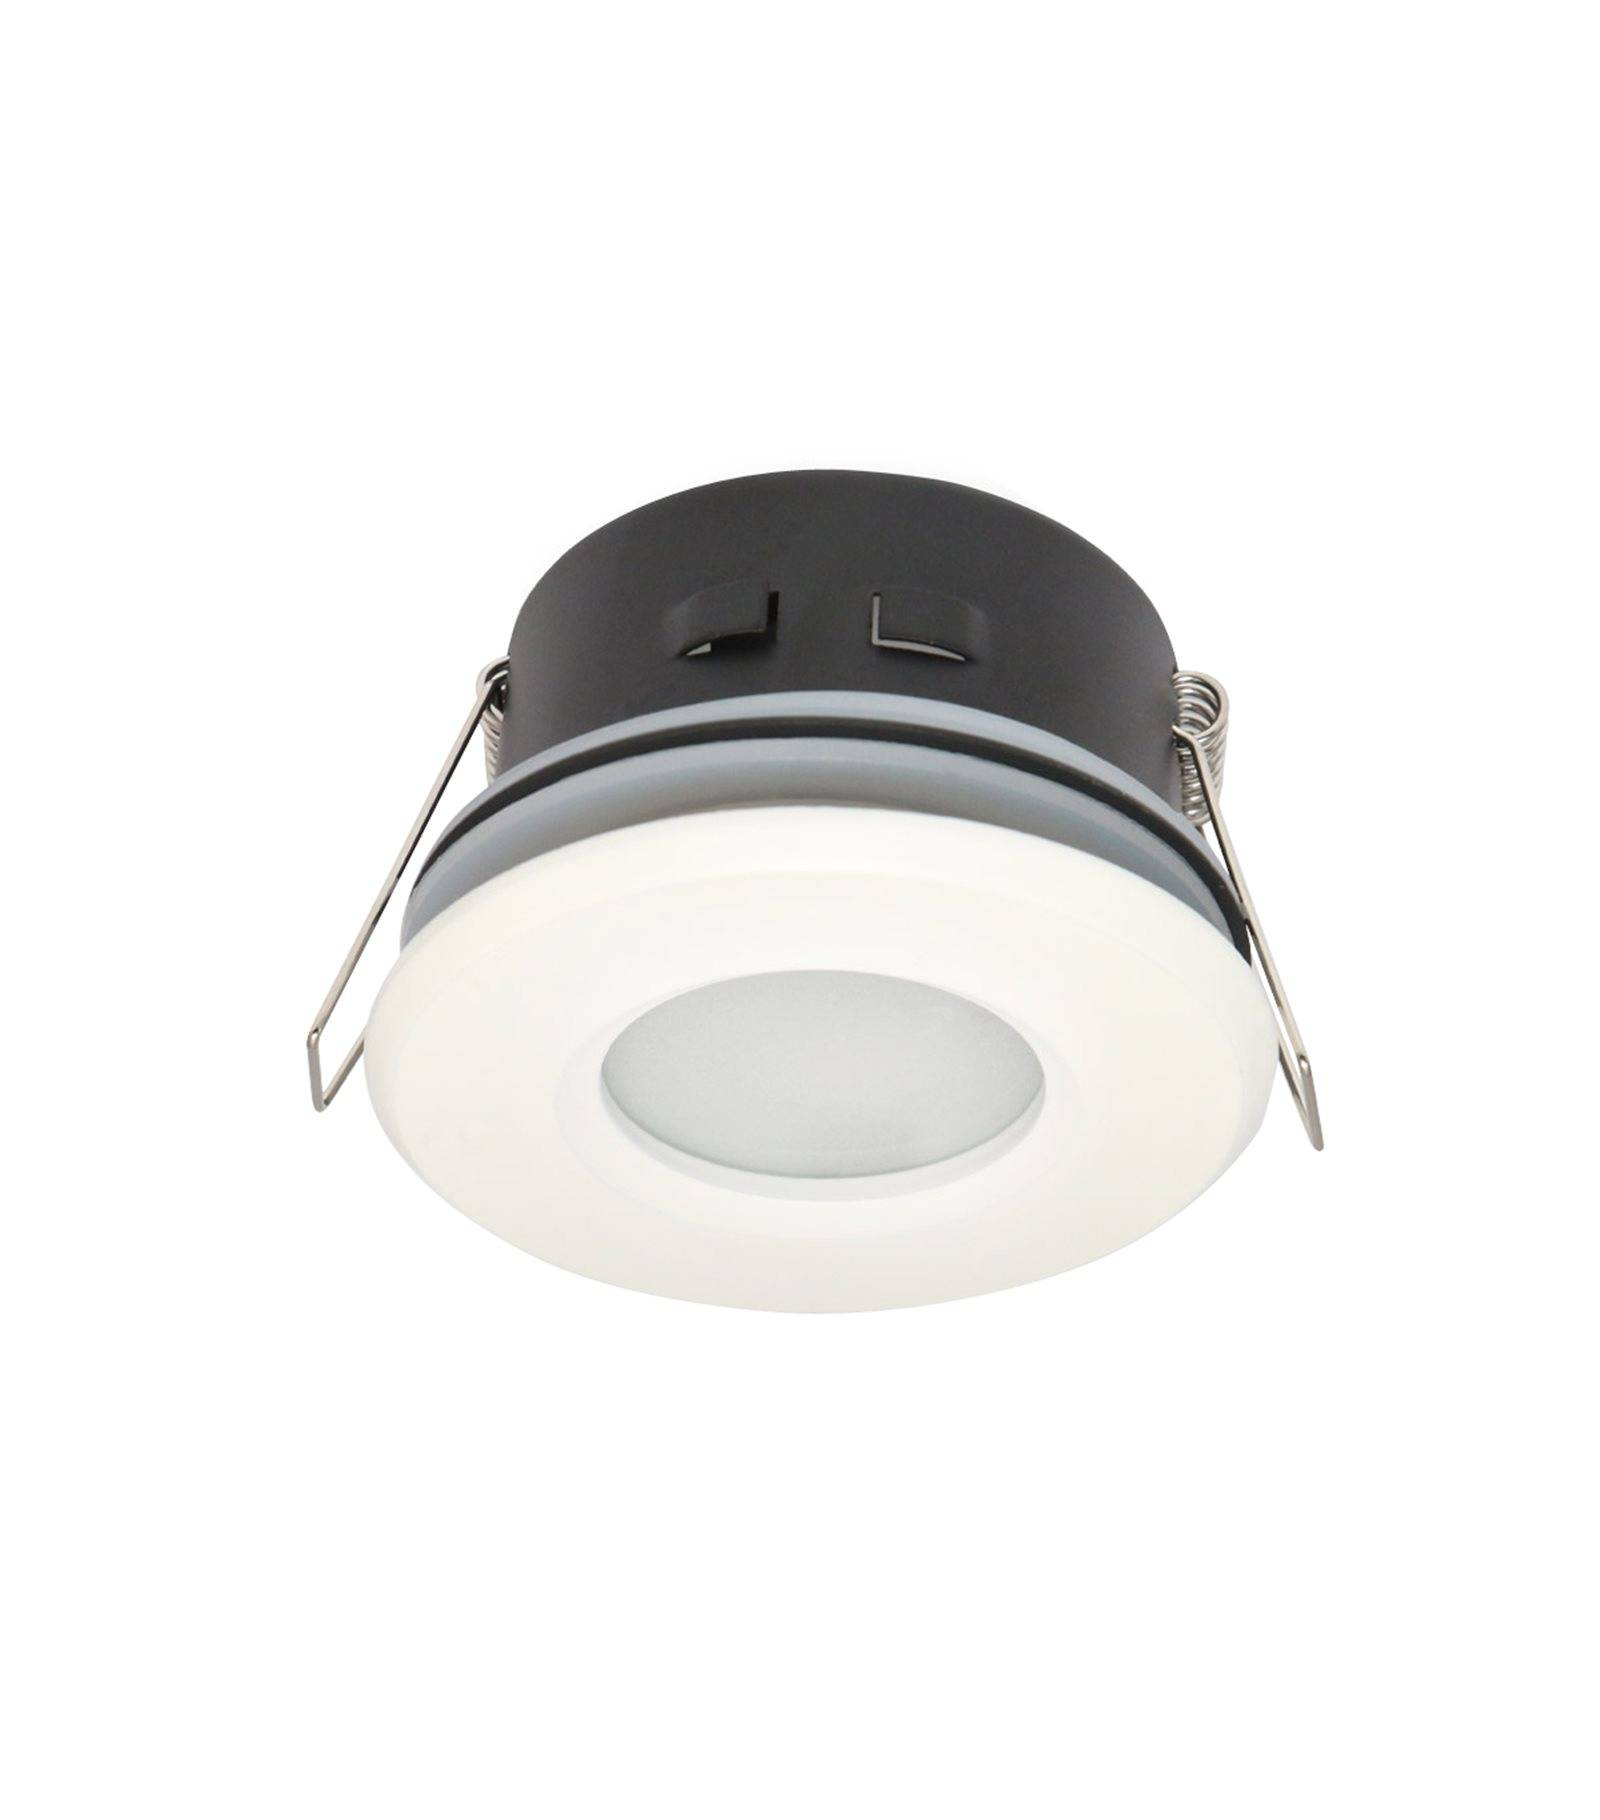 Spot encastrable salle de bain blanc rond gu5 3 mr16 ip65 for Spot led ip65 salle bain